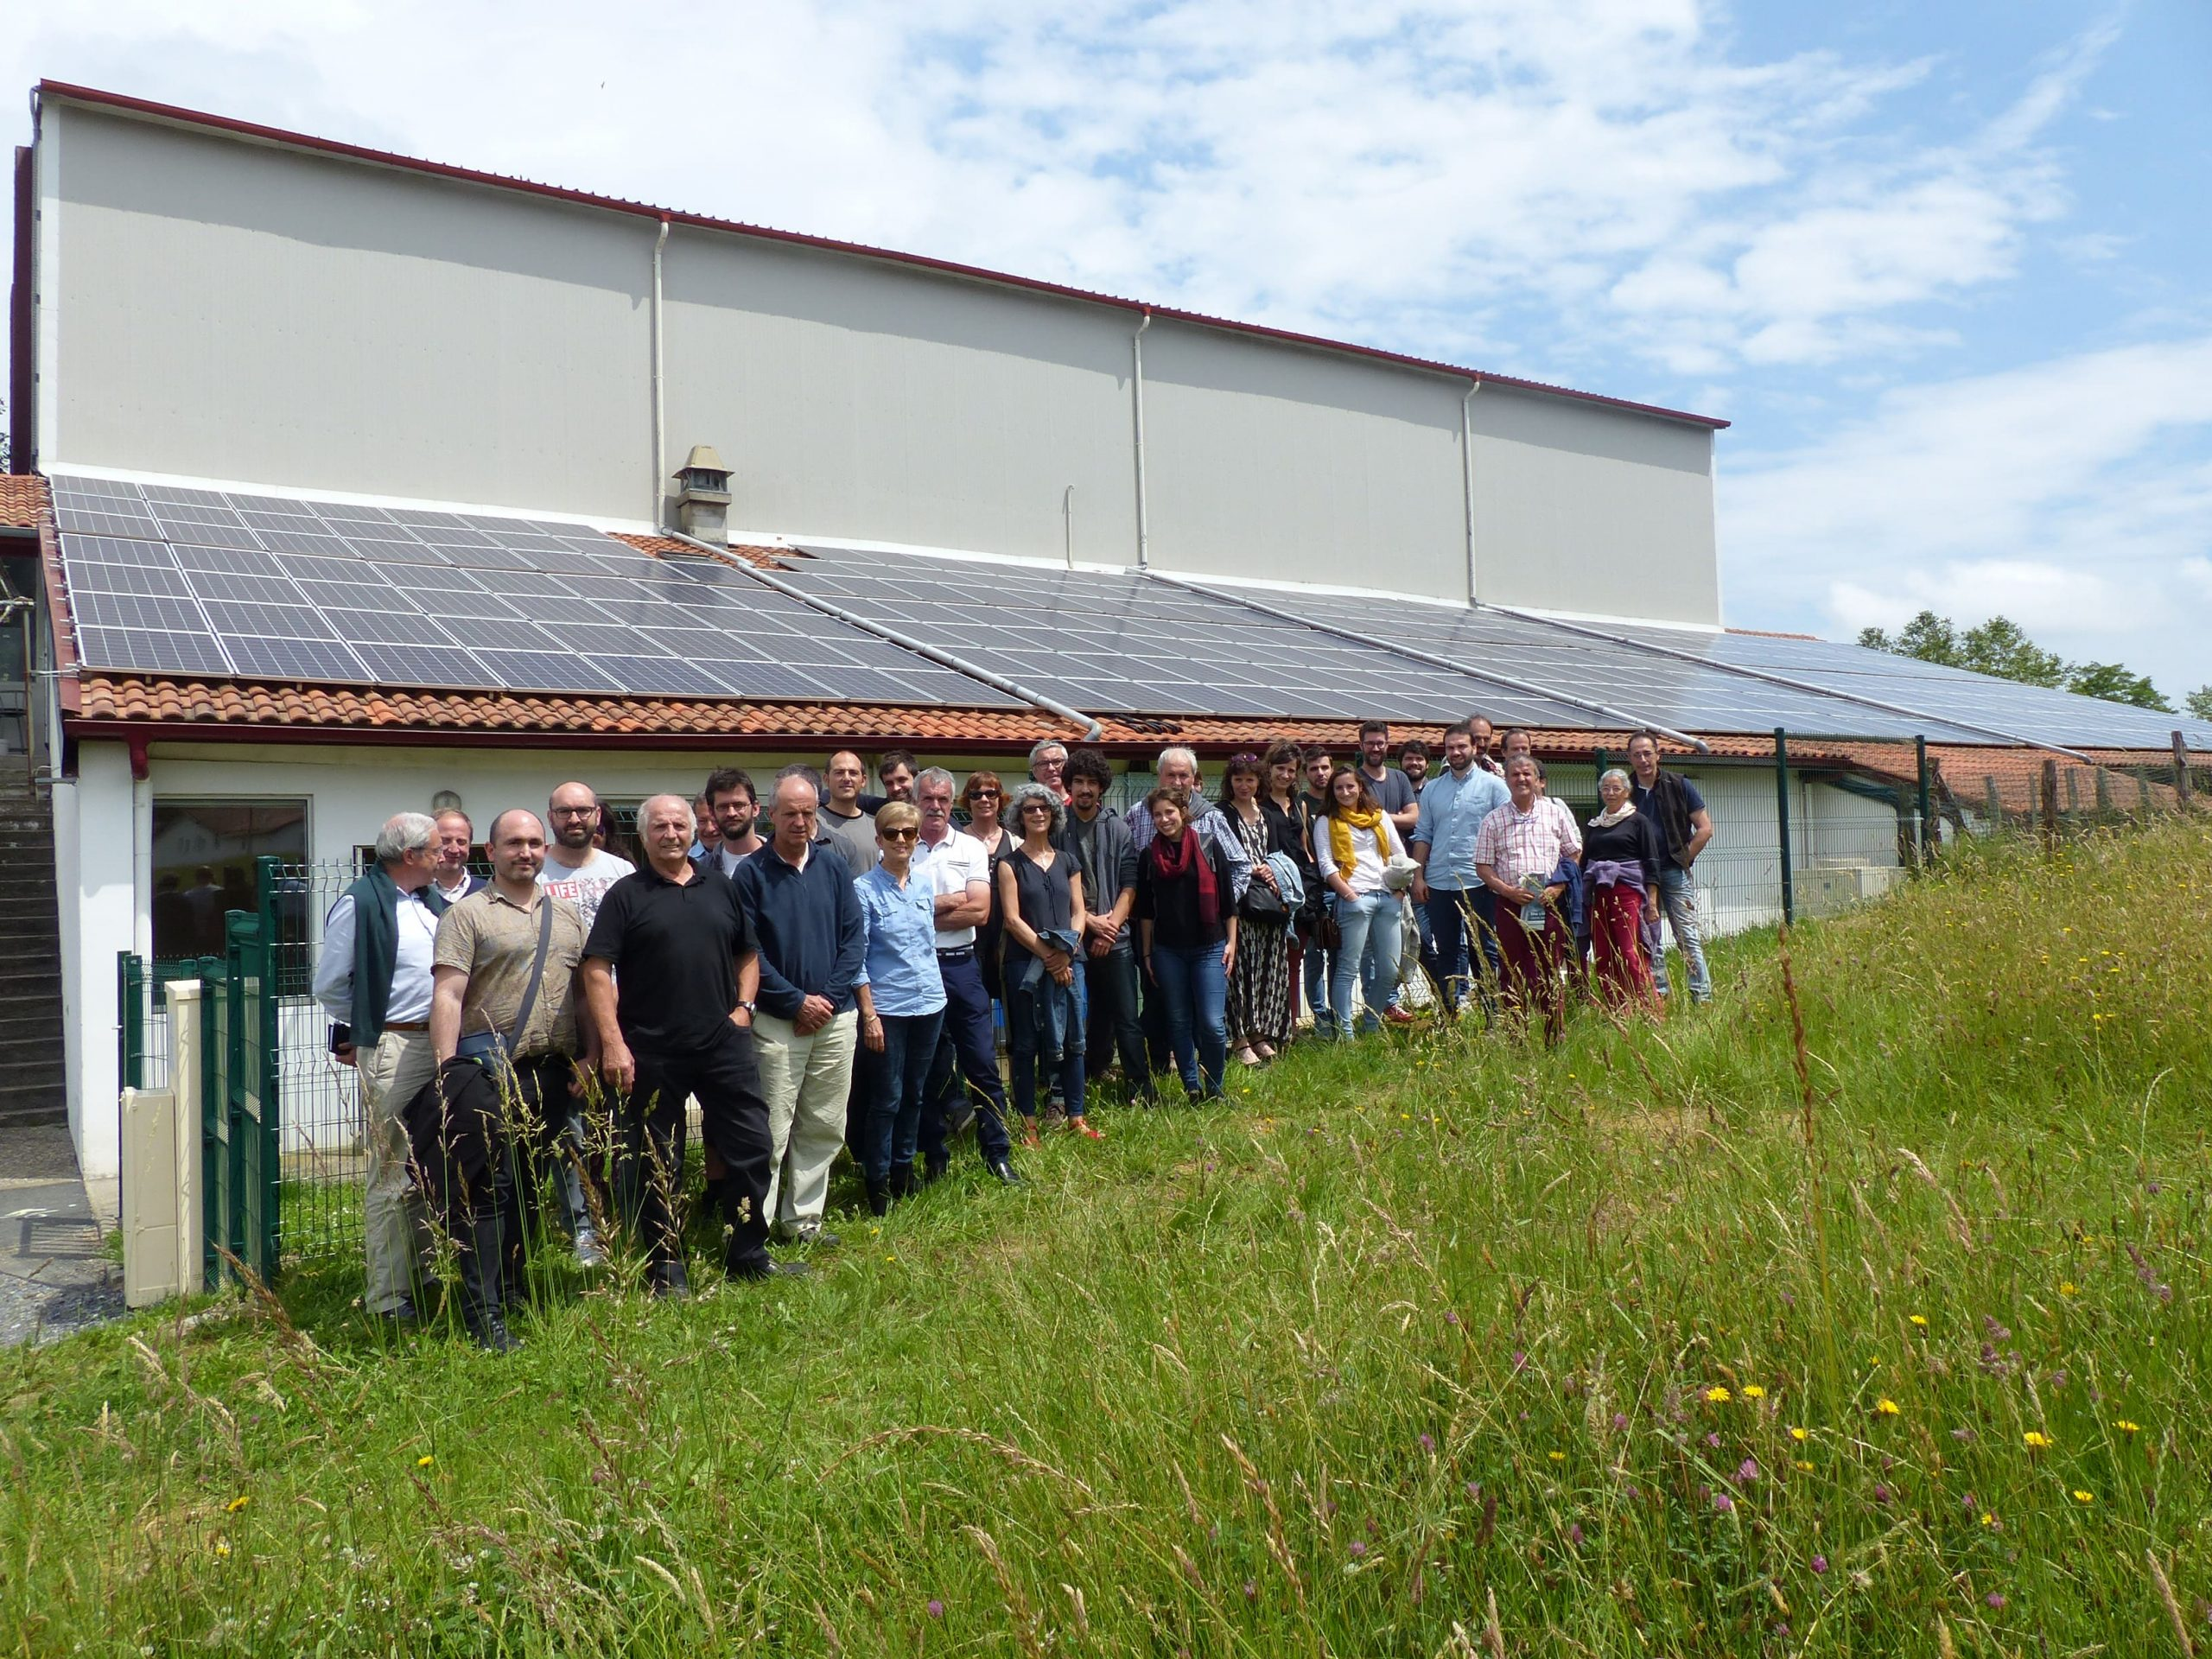 Sharing power to foster renewables: the cooperatives model